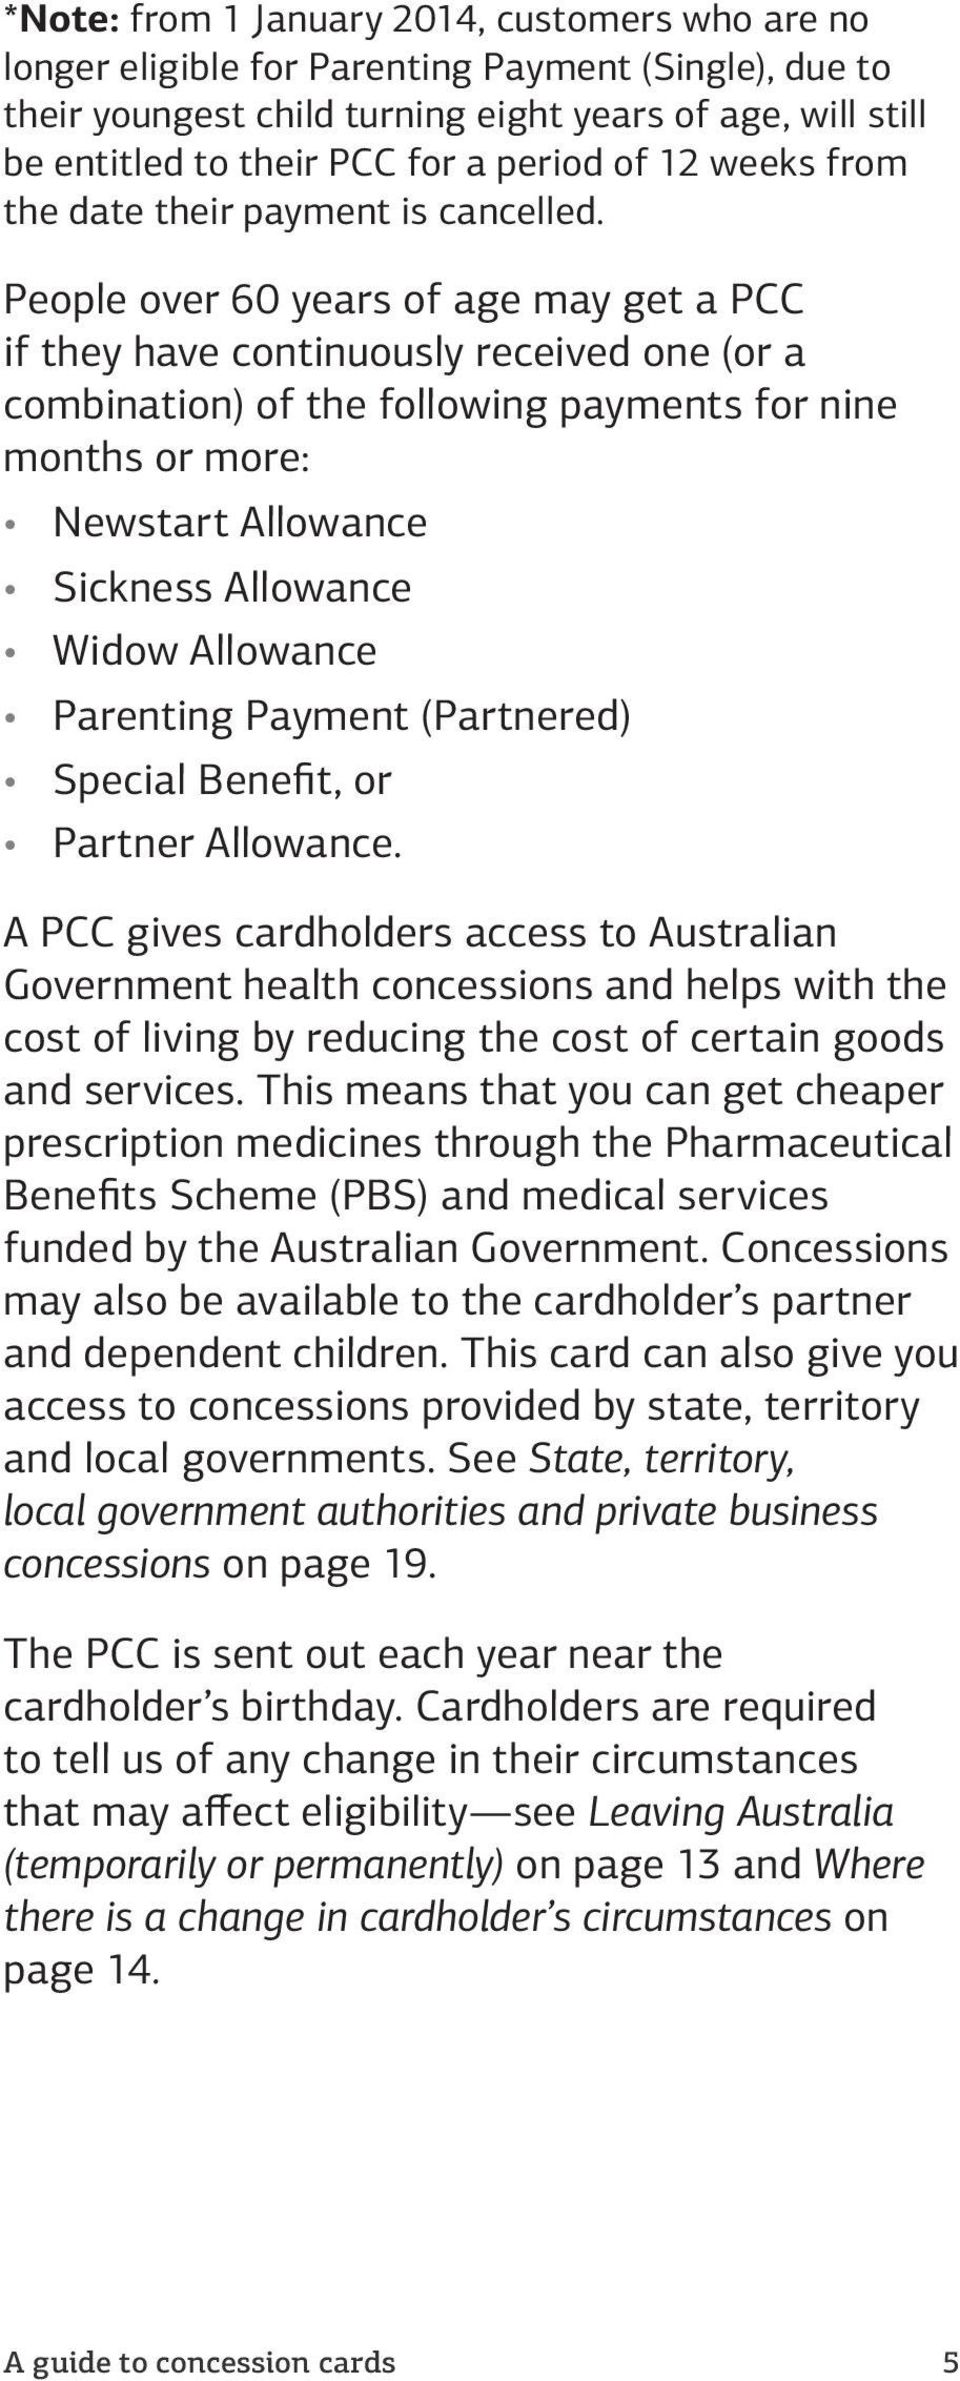 People over 60 years of age may get a PCC if they have continuously received one (or a combination) of the following payments for nine months or more: Newstart Allowance Sickness Allowance Widow